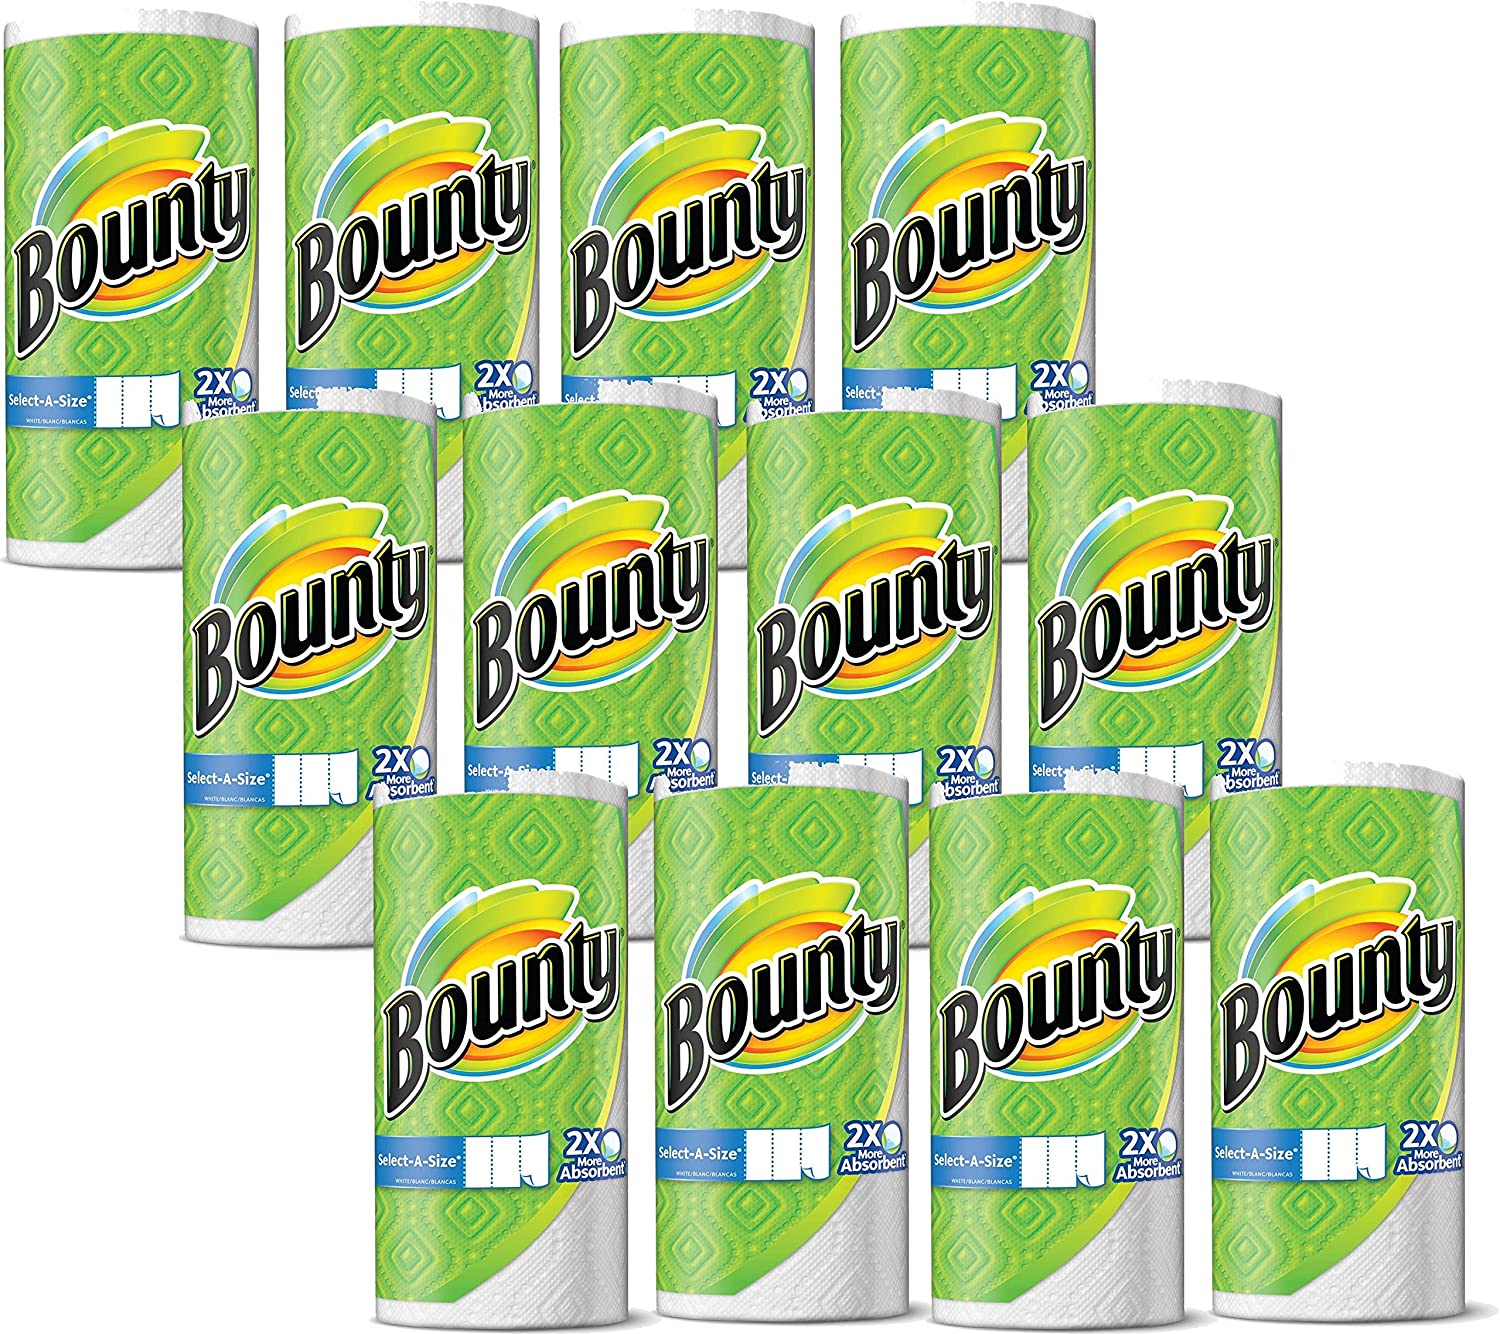 Bounty Select-A-Size, 12 Rolls, 948 Sheets Total, 11 x 5.9-Inches, White